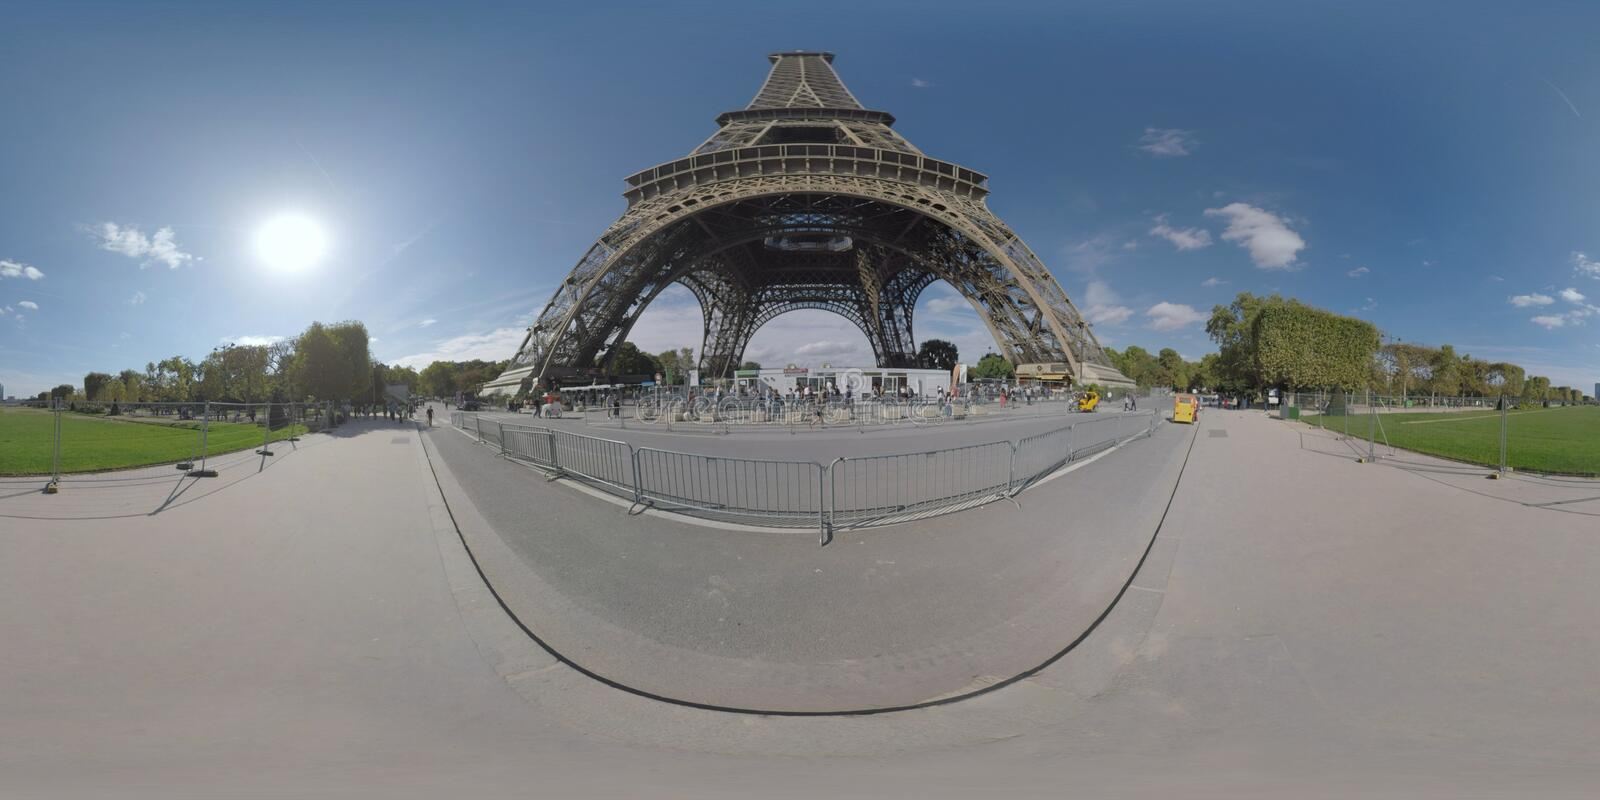 360 VR Gustave Eiffel Avenue with view to Eiffel Tower and Champ de Mars. 360 photo - City scene with people walking on Gustave Eiffel Avenue near the Eiffel stock photos